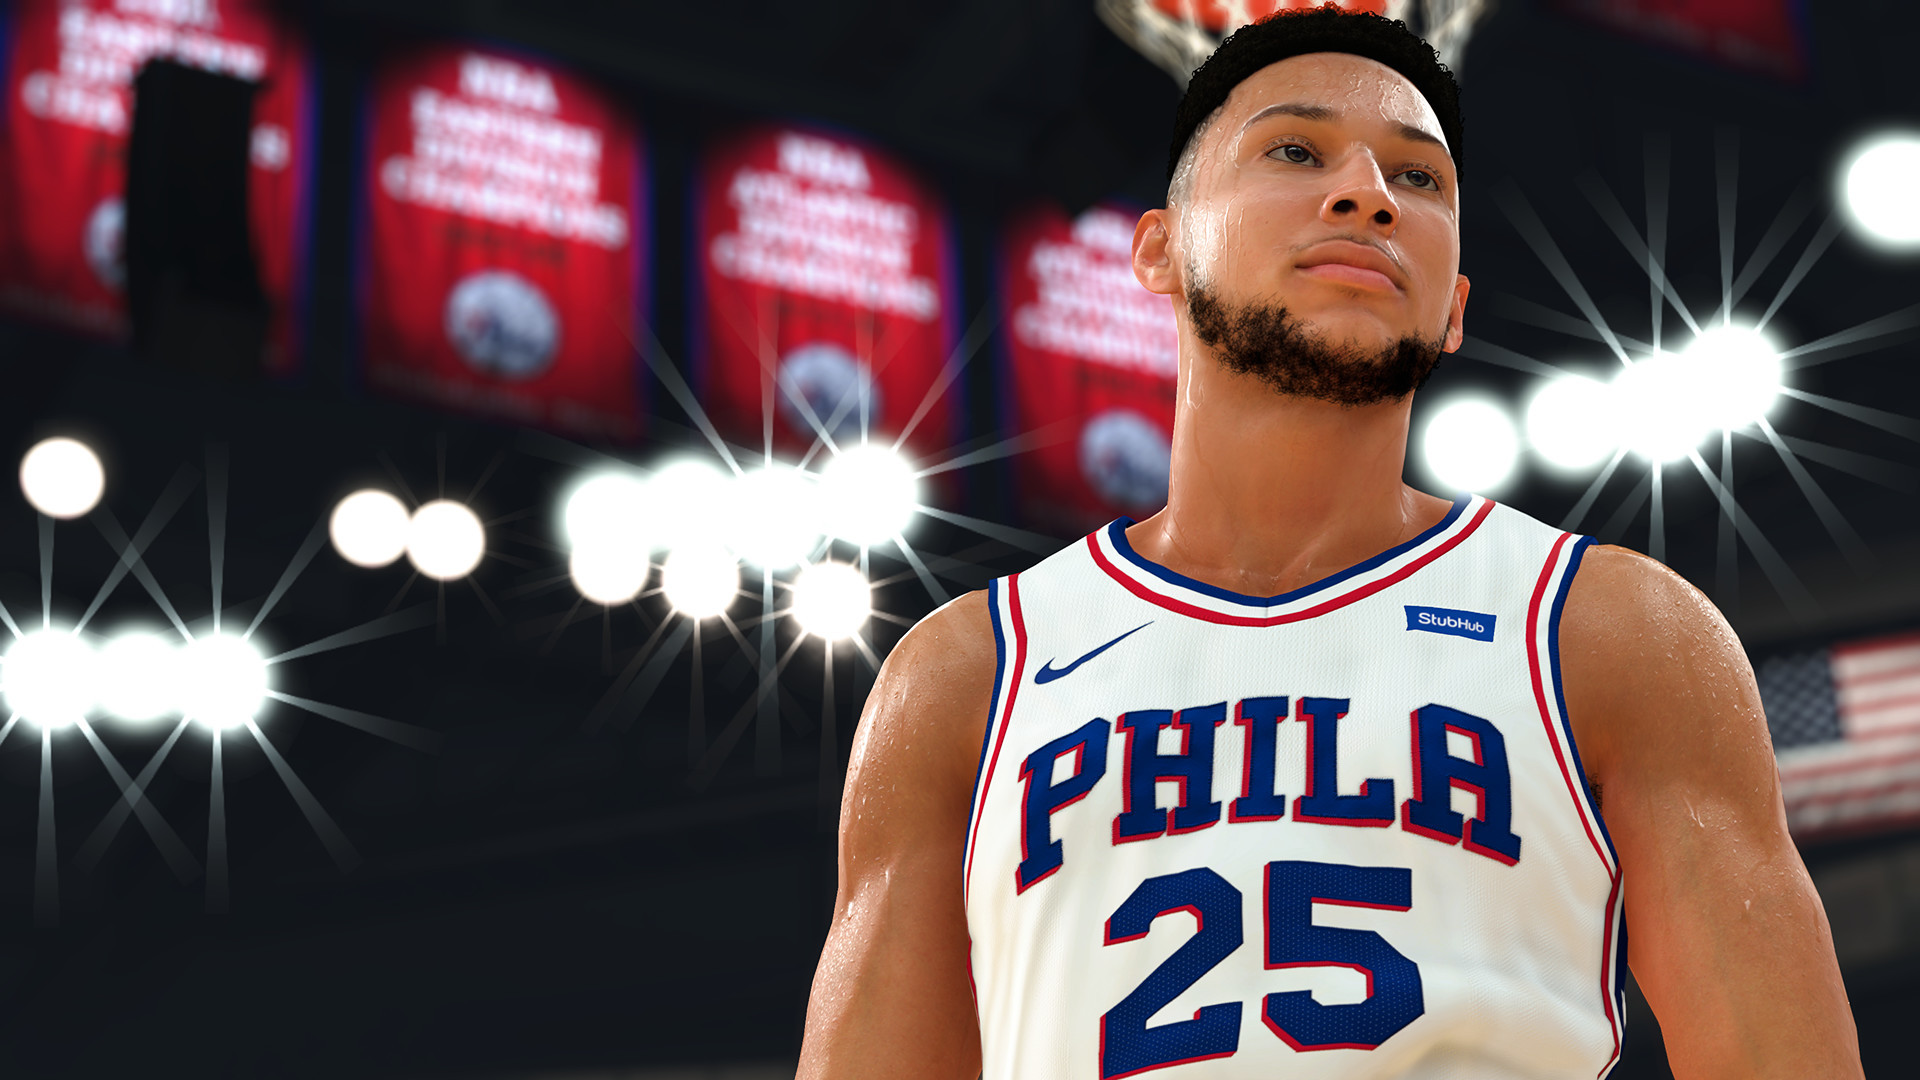 The NBA's top stars will go head-to-head in the virtual world, live on ESPN.